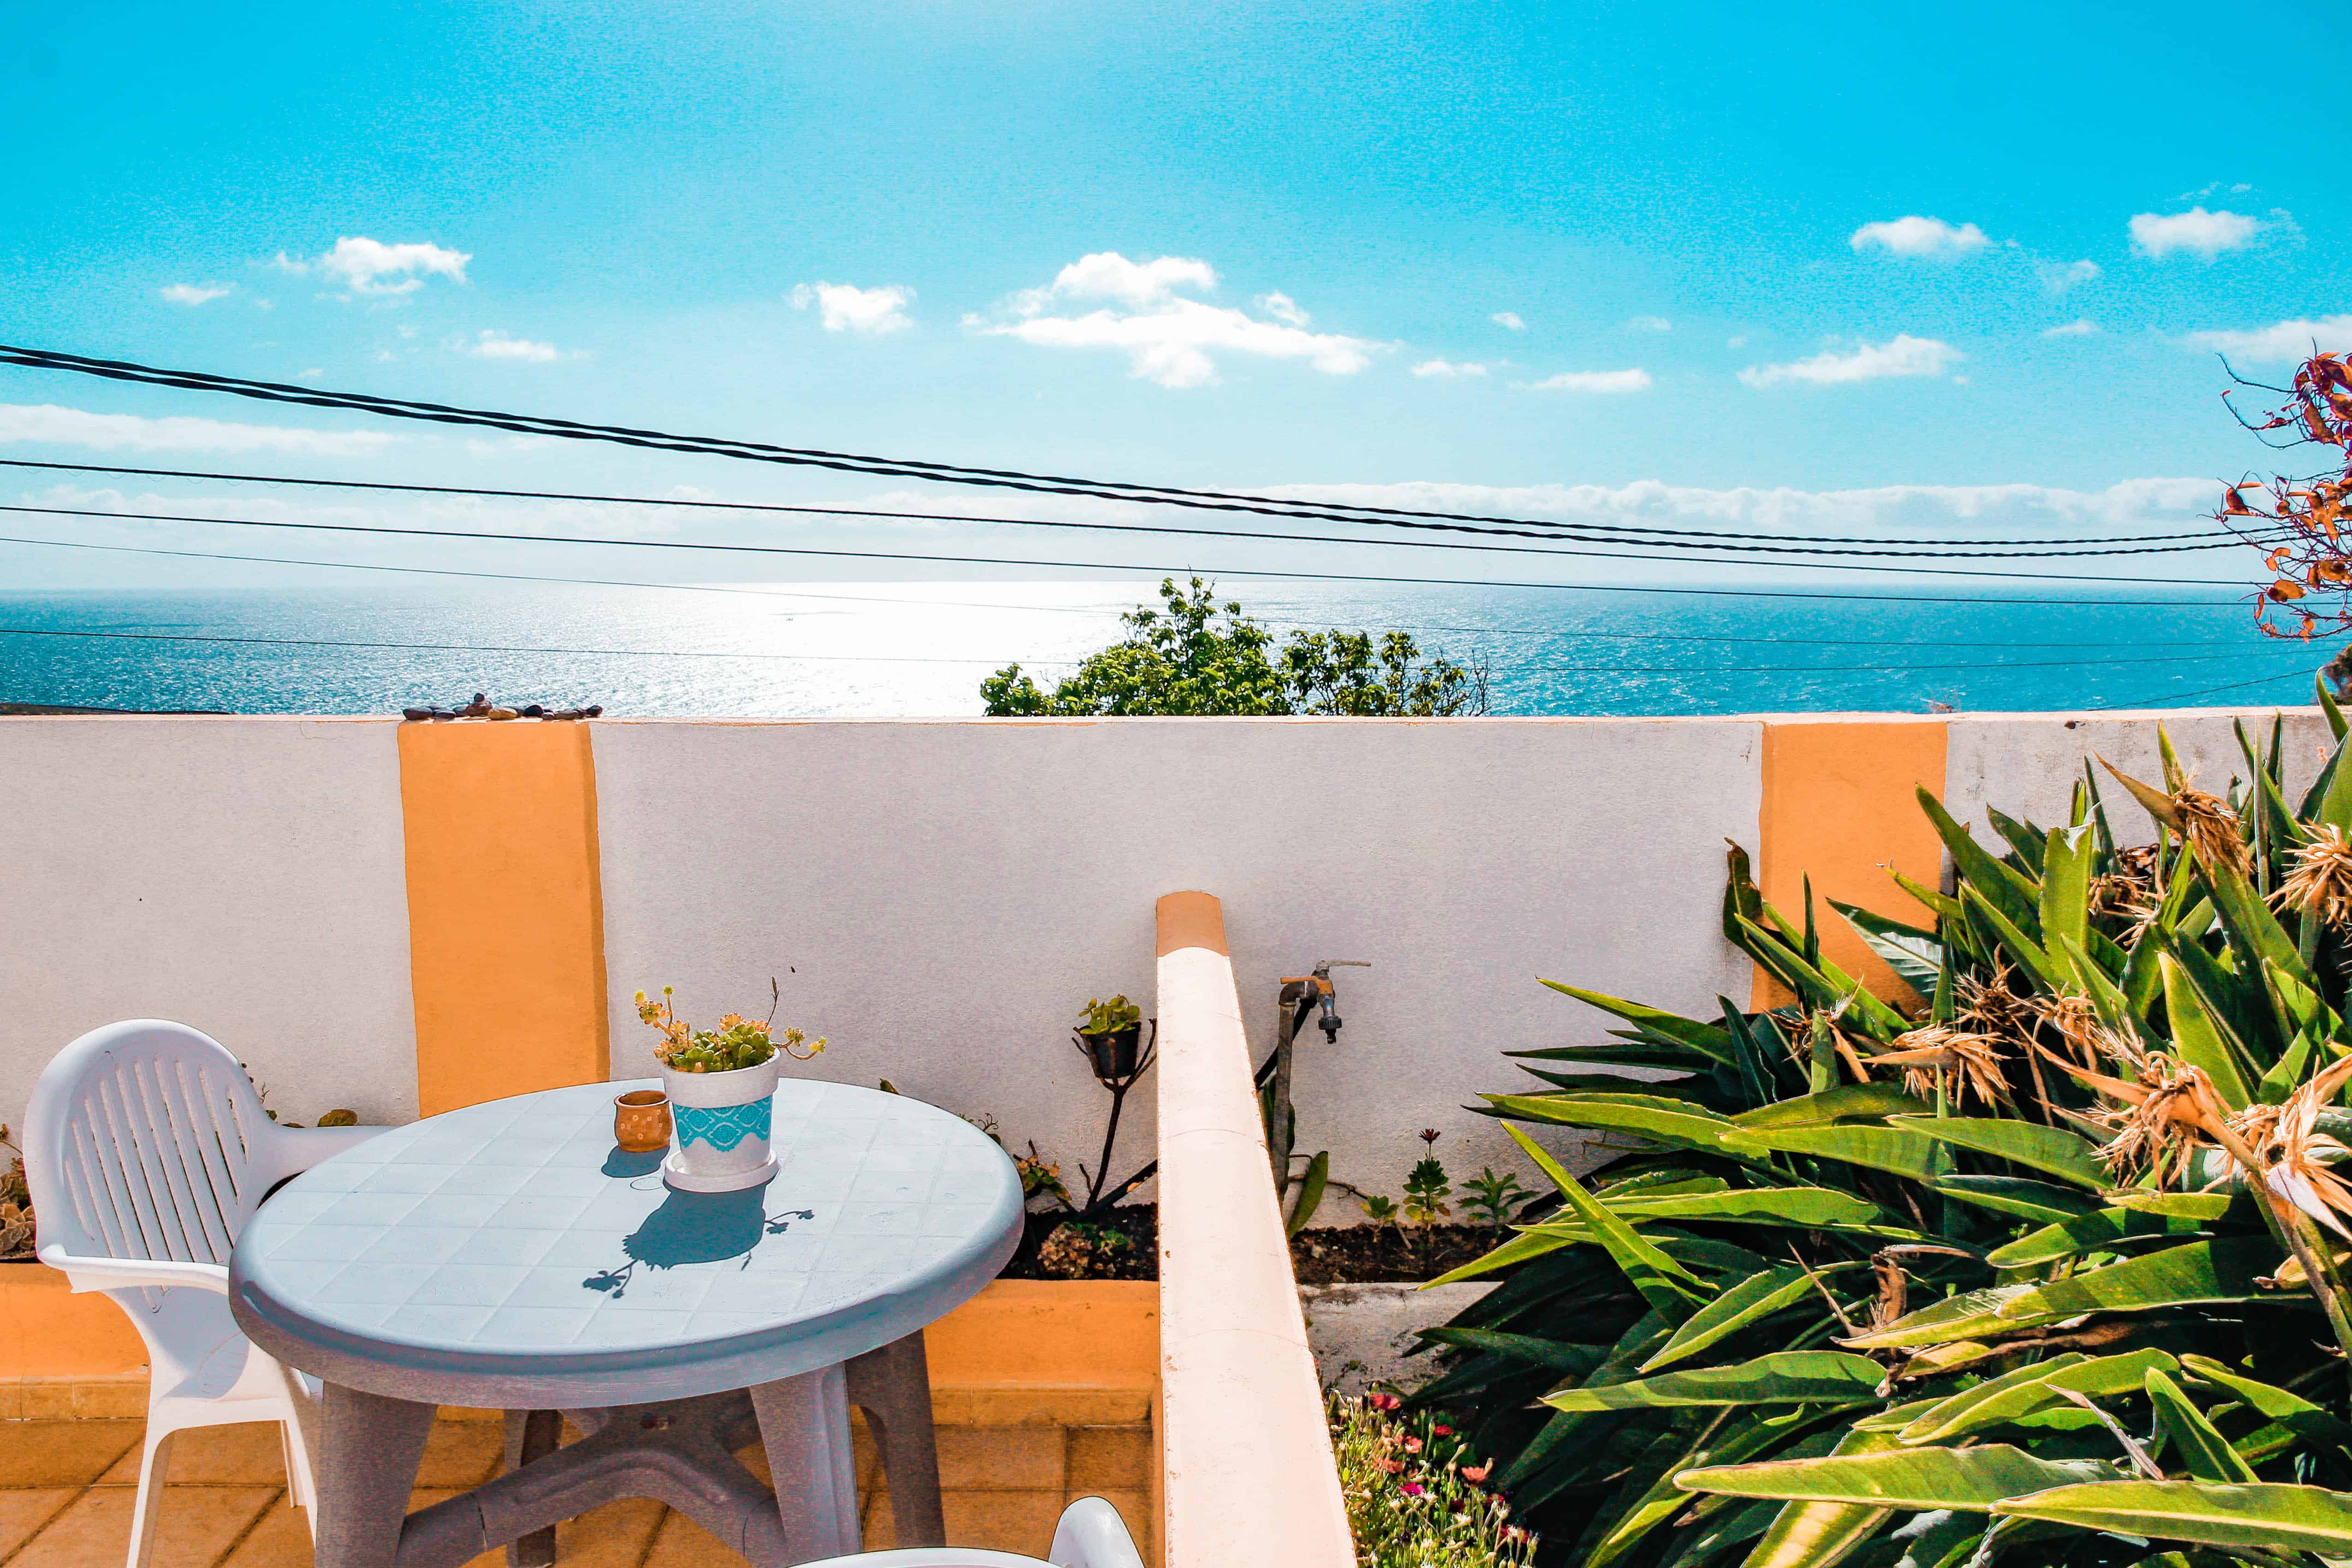 Morning breakfast spot with ocean view in La Palma, Canary Islands. Paradise home in La Palma, article by Kiss My Backpack at https://www.kissmybackpack.com/